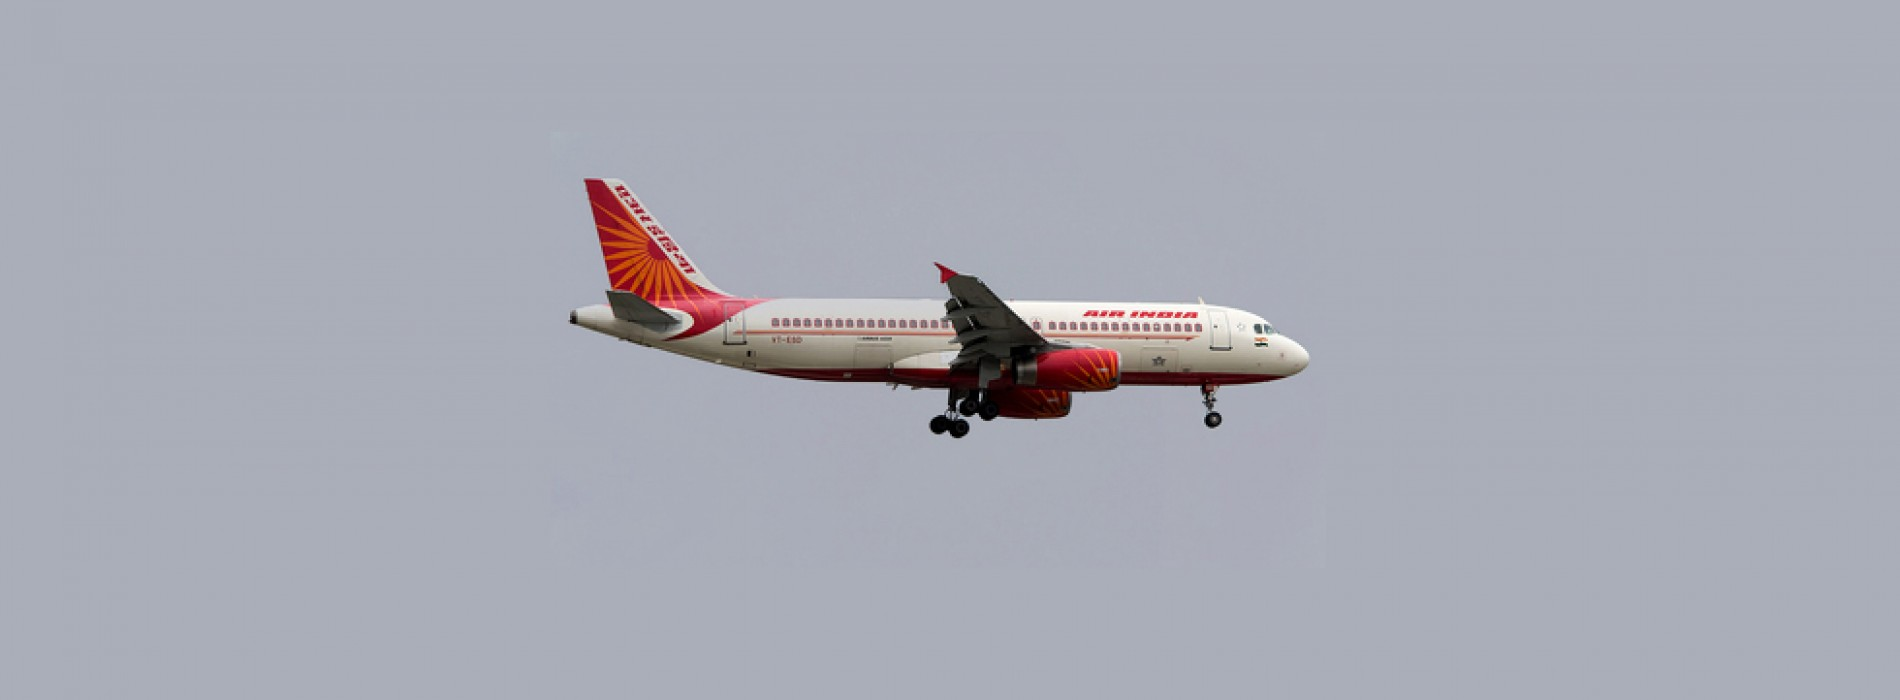 Civil Aviation Ministry deferred decision on handing over of Air India's Centaur Hotel land to DIAL